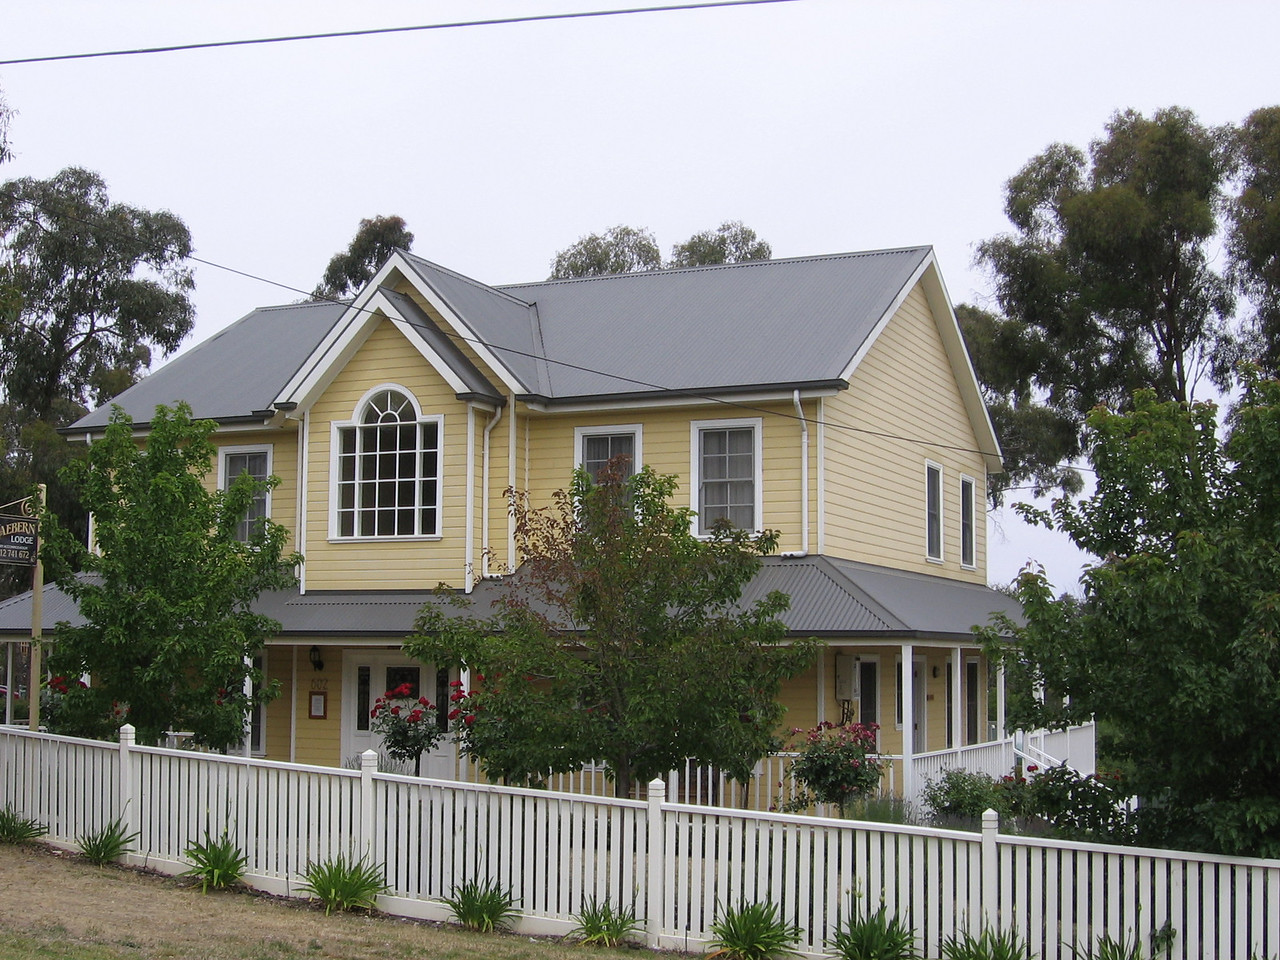 our grand accom the night in one road buninyong!